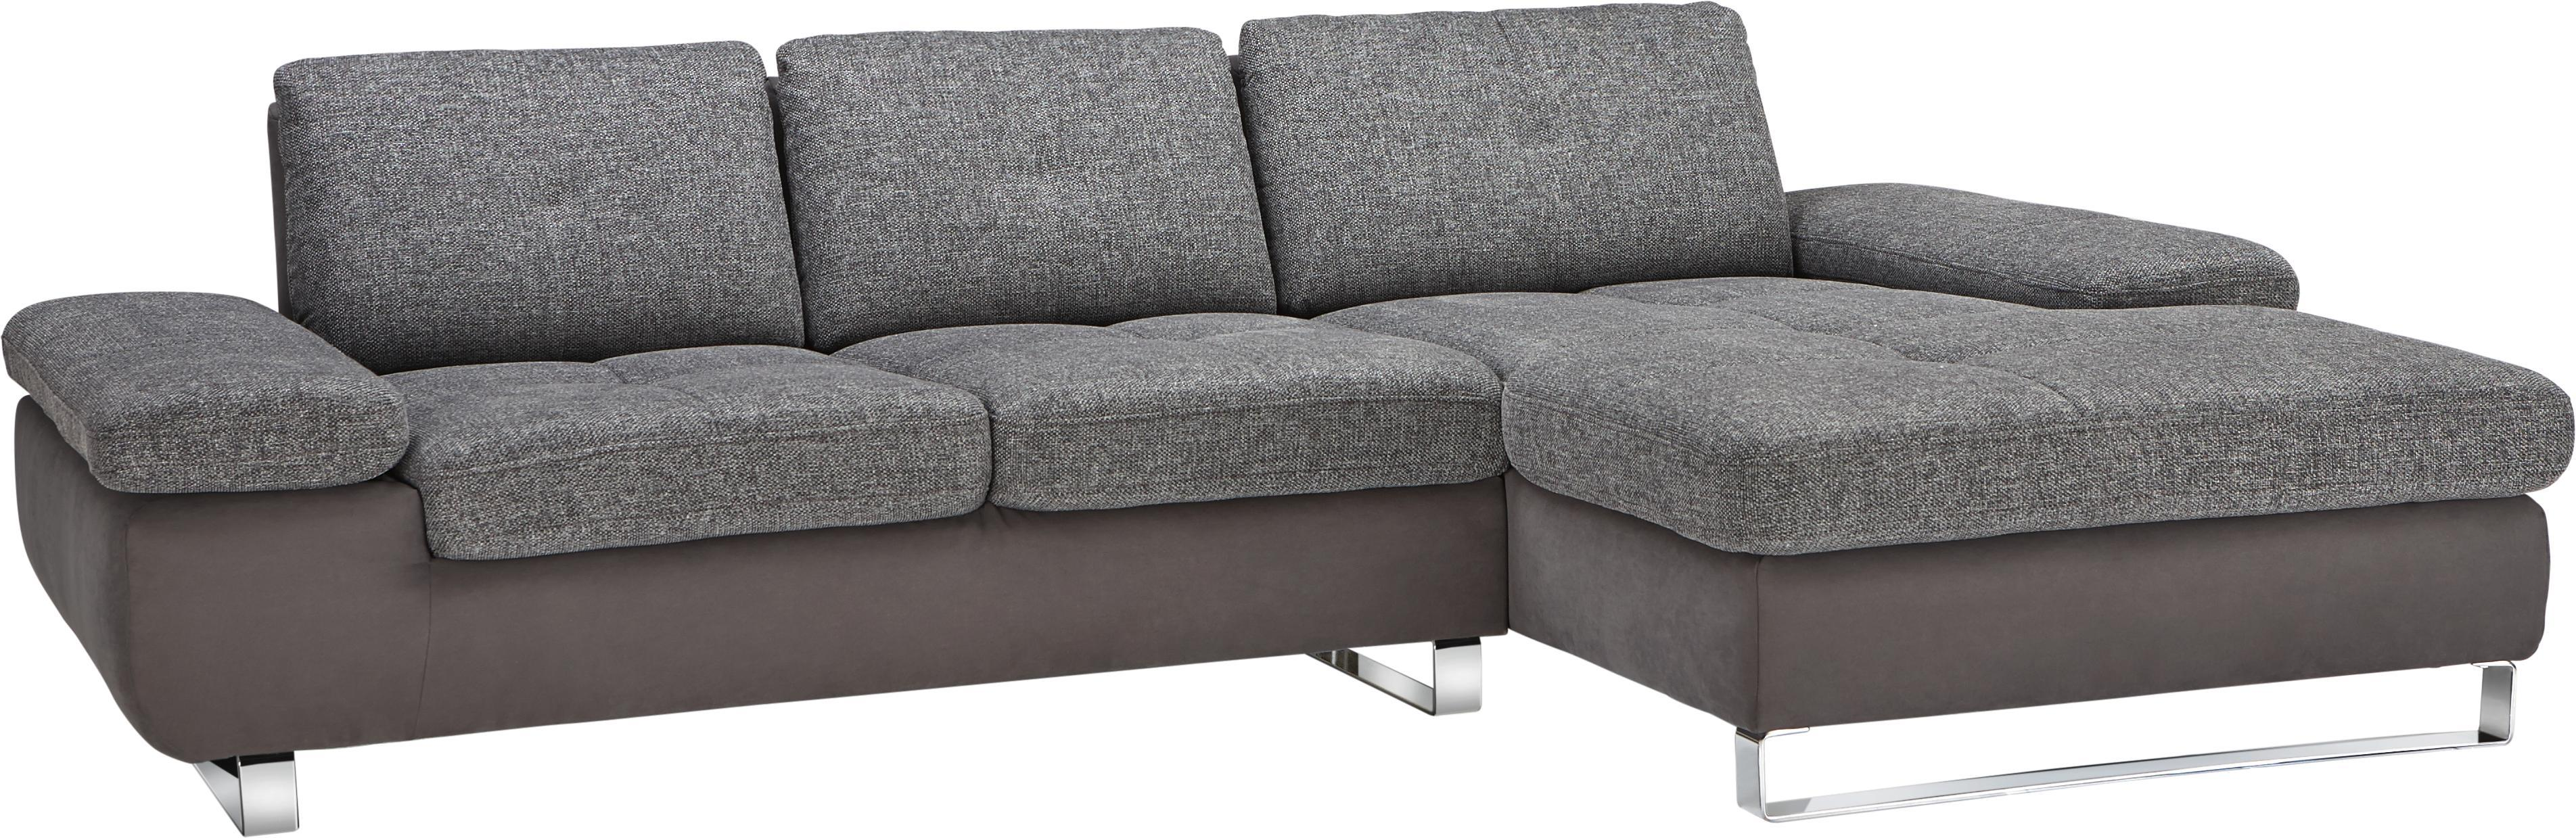 Couch Extra Tief Sofas Couches Jetzt Entdecken